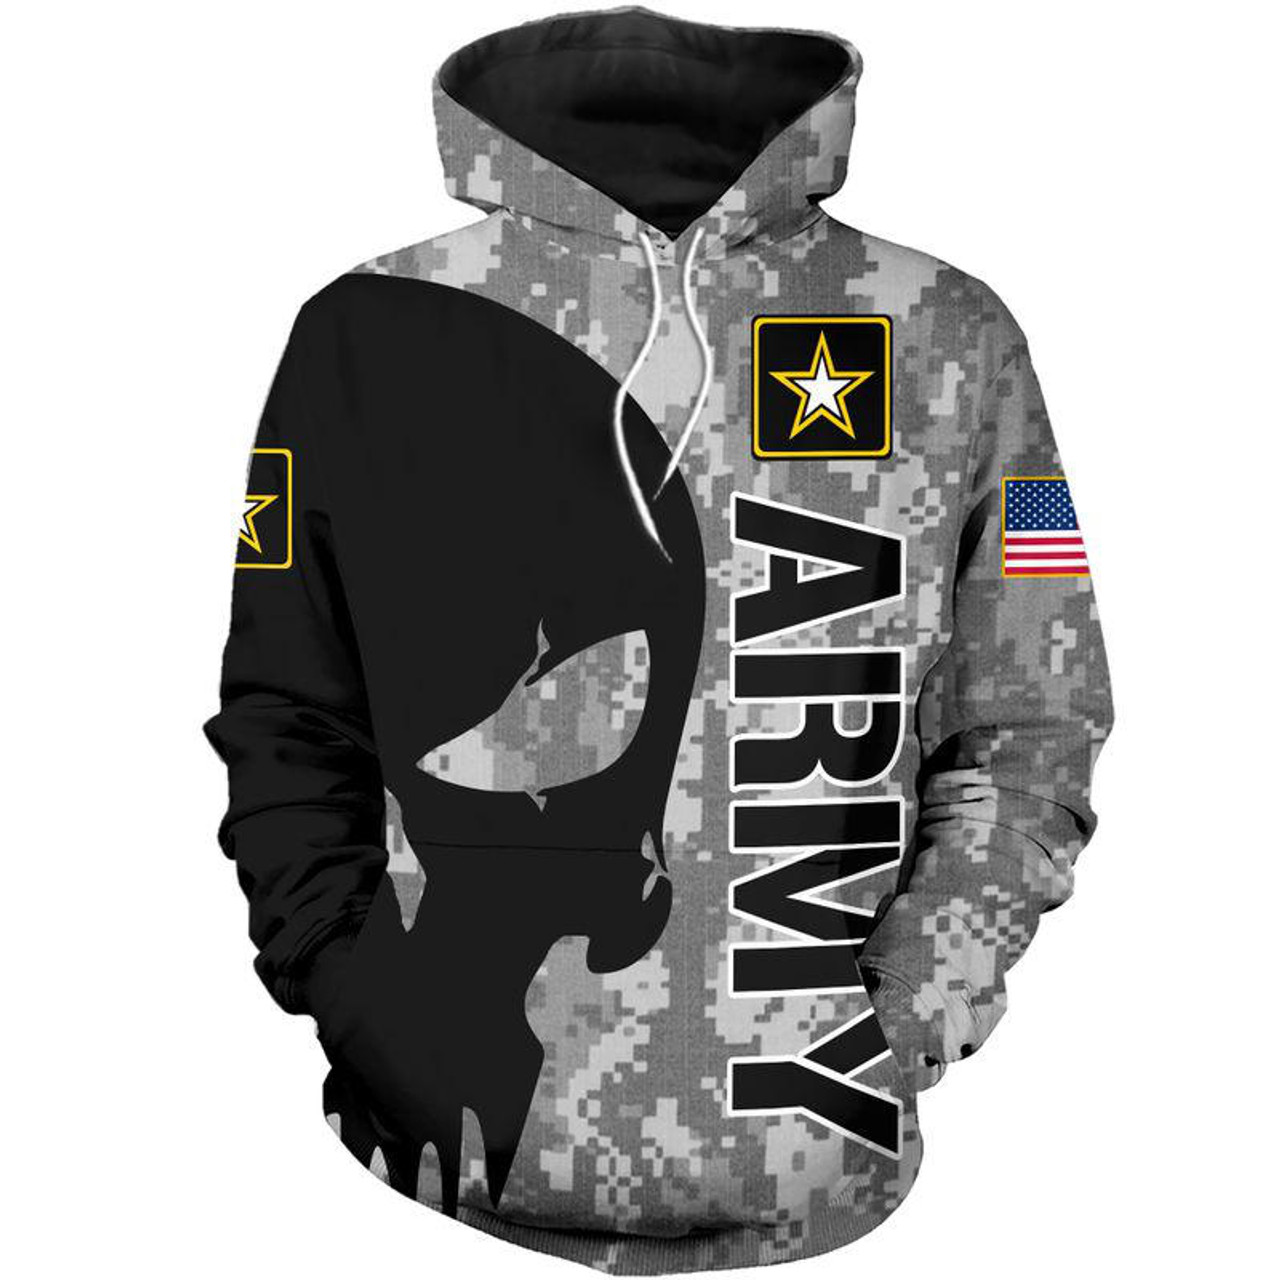 **(OFFICIAL-U.S.ARMY-VETERANS-PULLOVER-HOODIES/CLASSIC-PUNISHER-SKULL & CLASSIC-ARMY-DIGITAL-CAMO.DESIGN & OFFICIAL-ARMY-LOGOS/CUSTOM-3D-DETAILED-GRAPHIC-PRINTED/DOUBLE-SIDED-ALL-OVER-PRINTED-SLEEVE-DESIGNED/WARM-PREMIUM-PULLOVER-U.S.ARMY-HOODIES)**